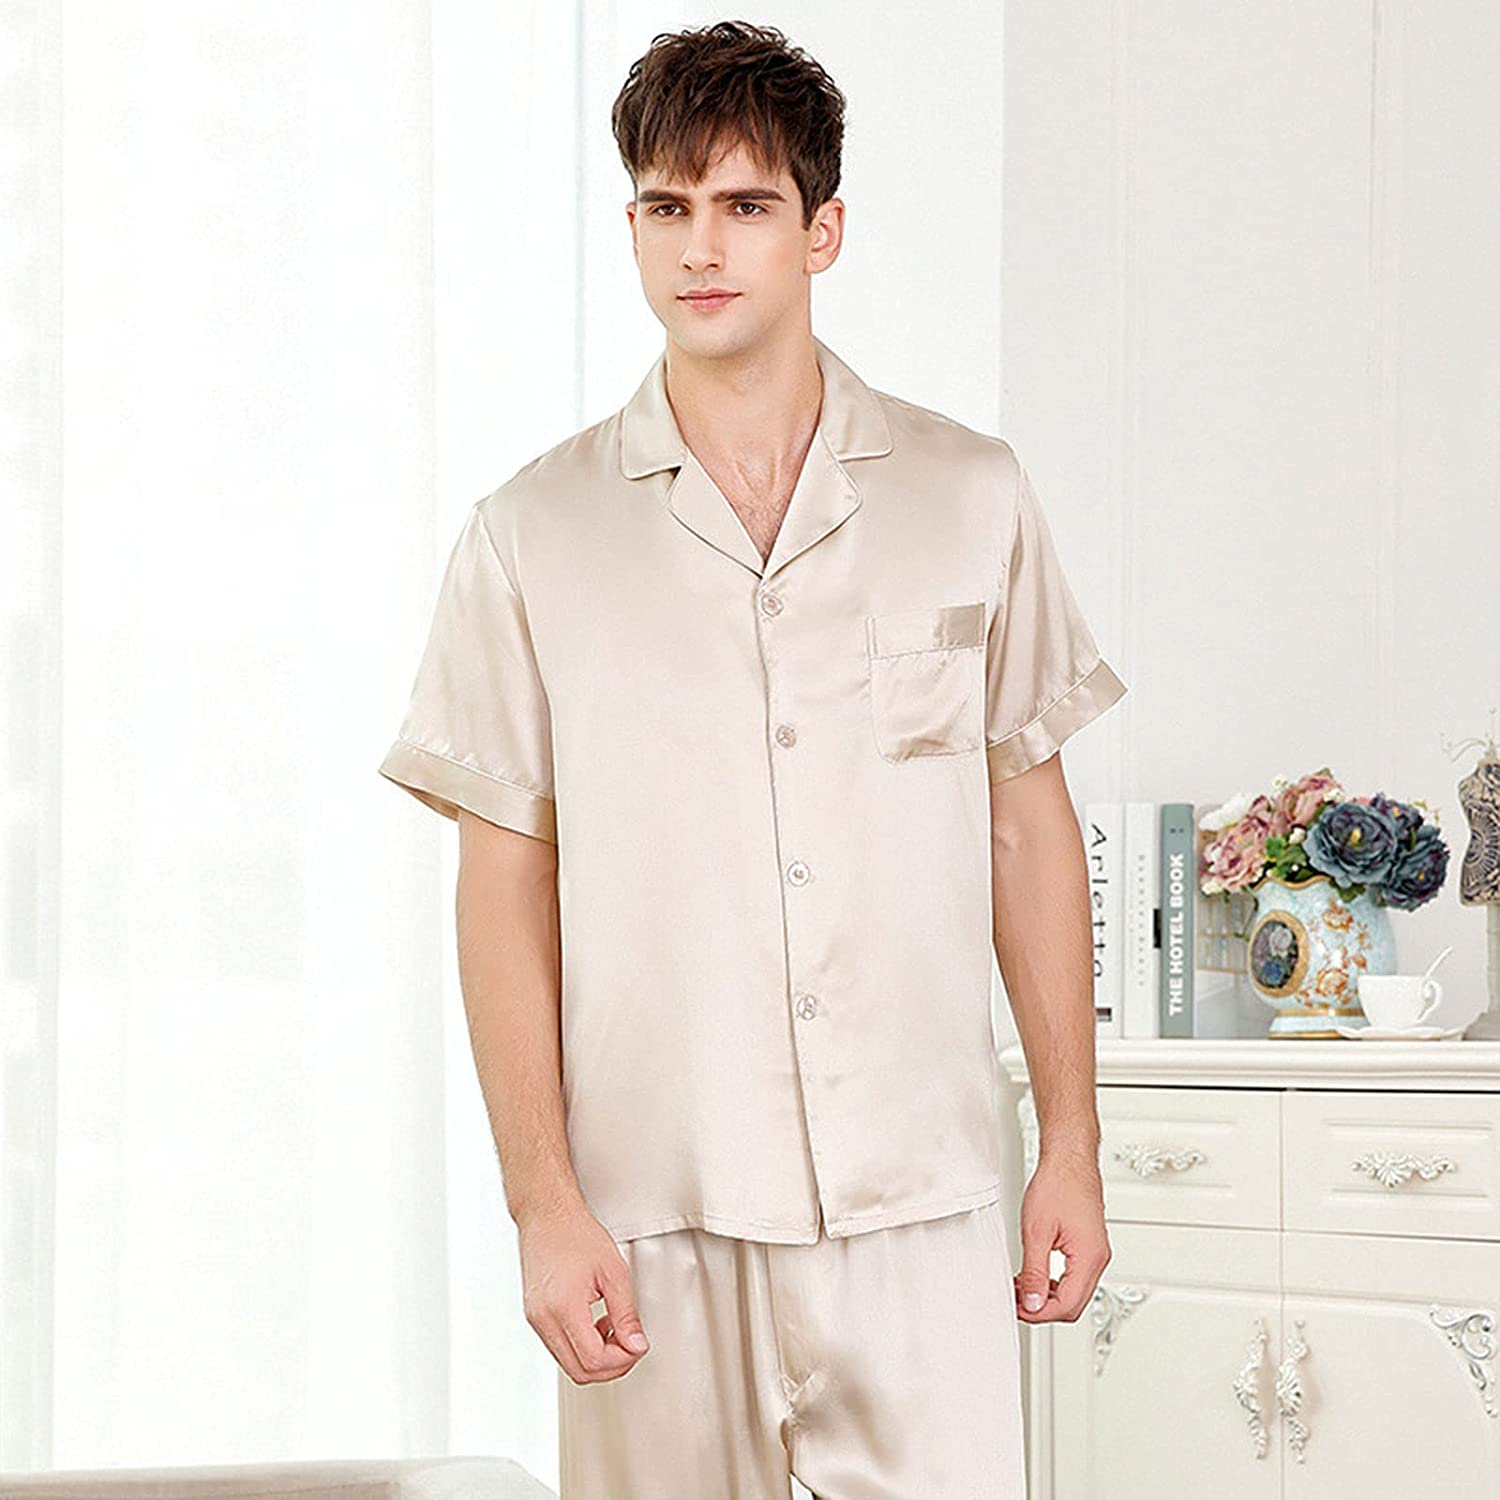 CAICAIL Men's Cotton Pajama Set, Short Sleeve Button-Down Woven Sleepwear Lounge Pjs Set with Pockets